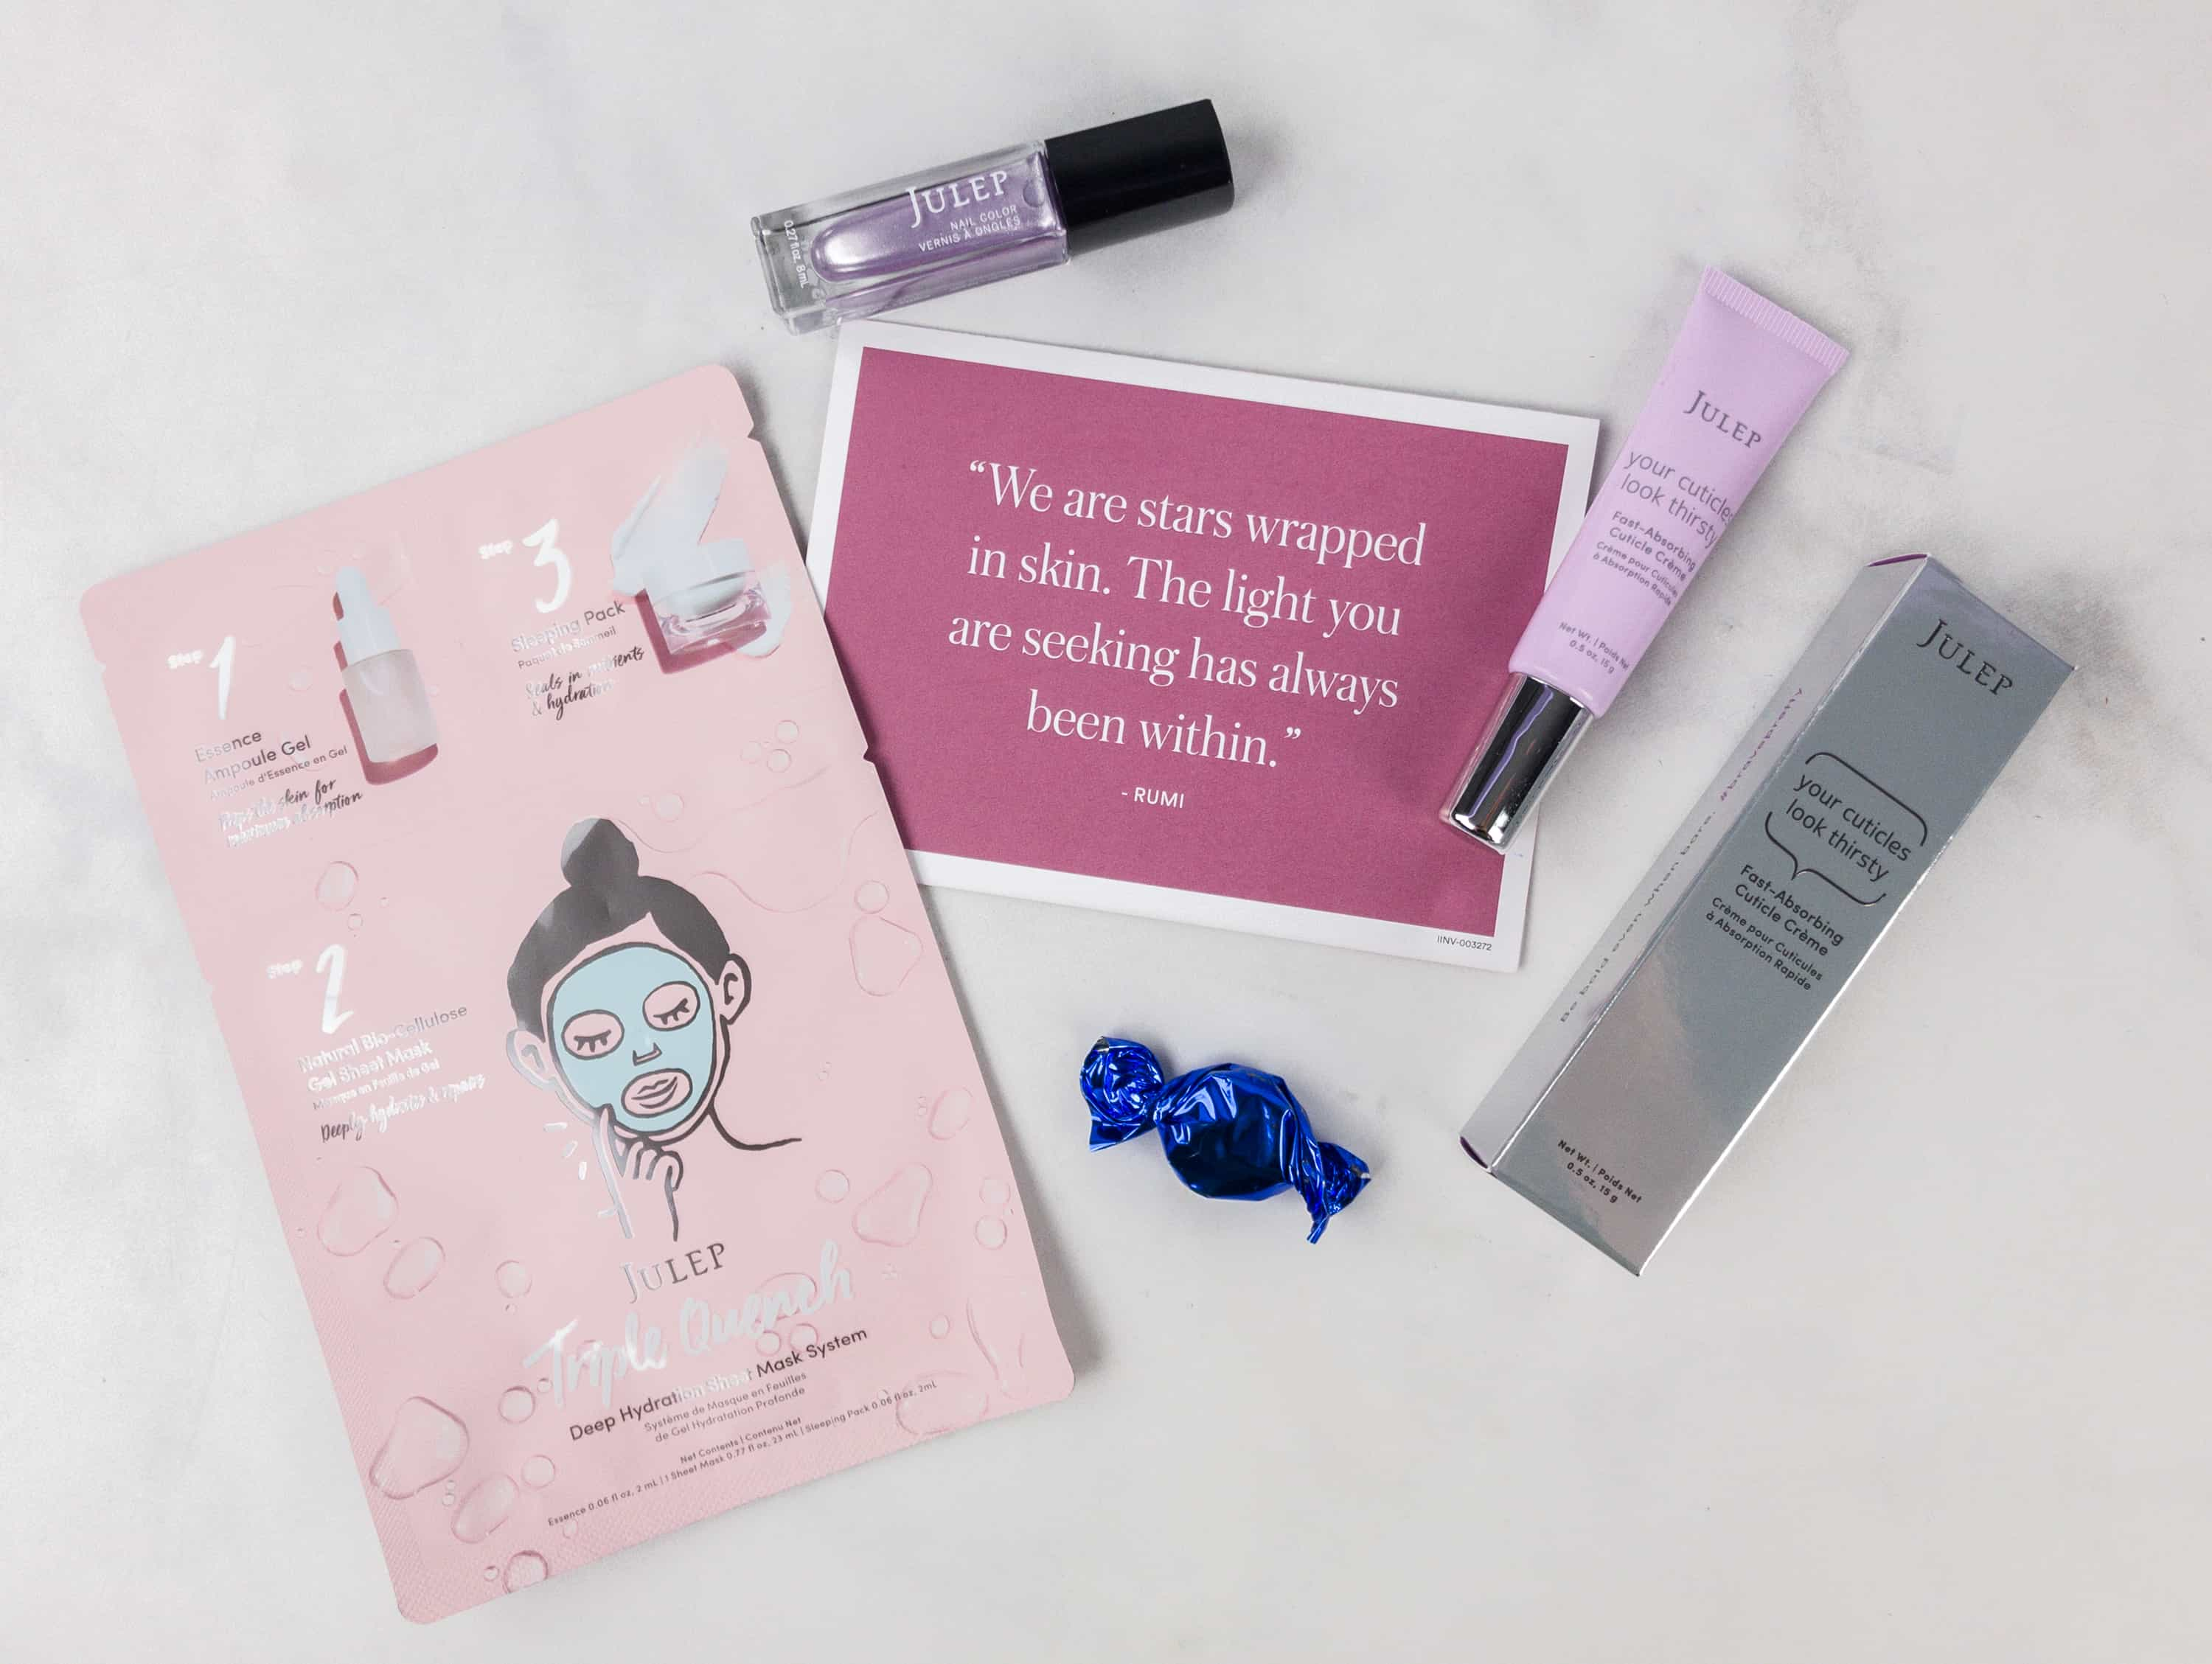 Julep Beauty Box November 2017 Subscription Box Review + Free Box Coupon!